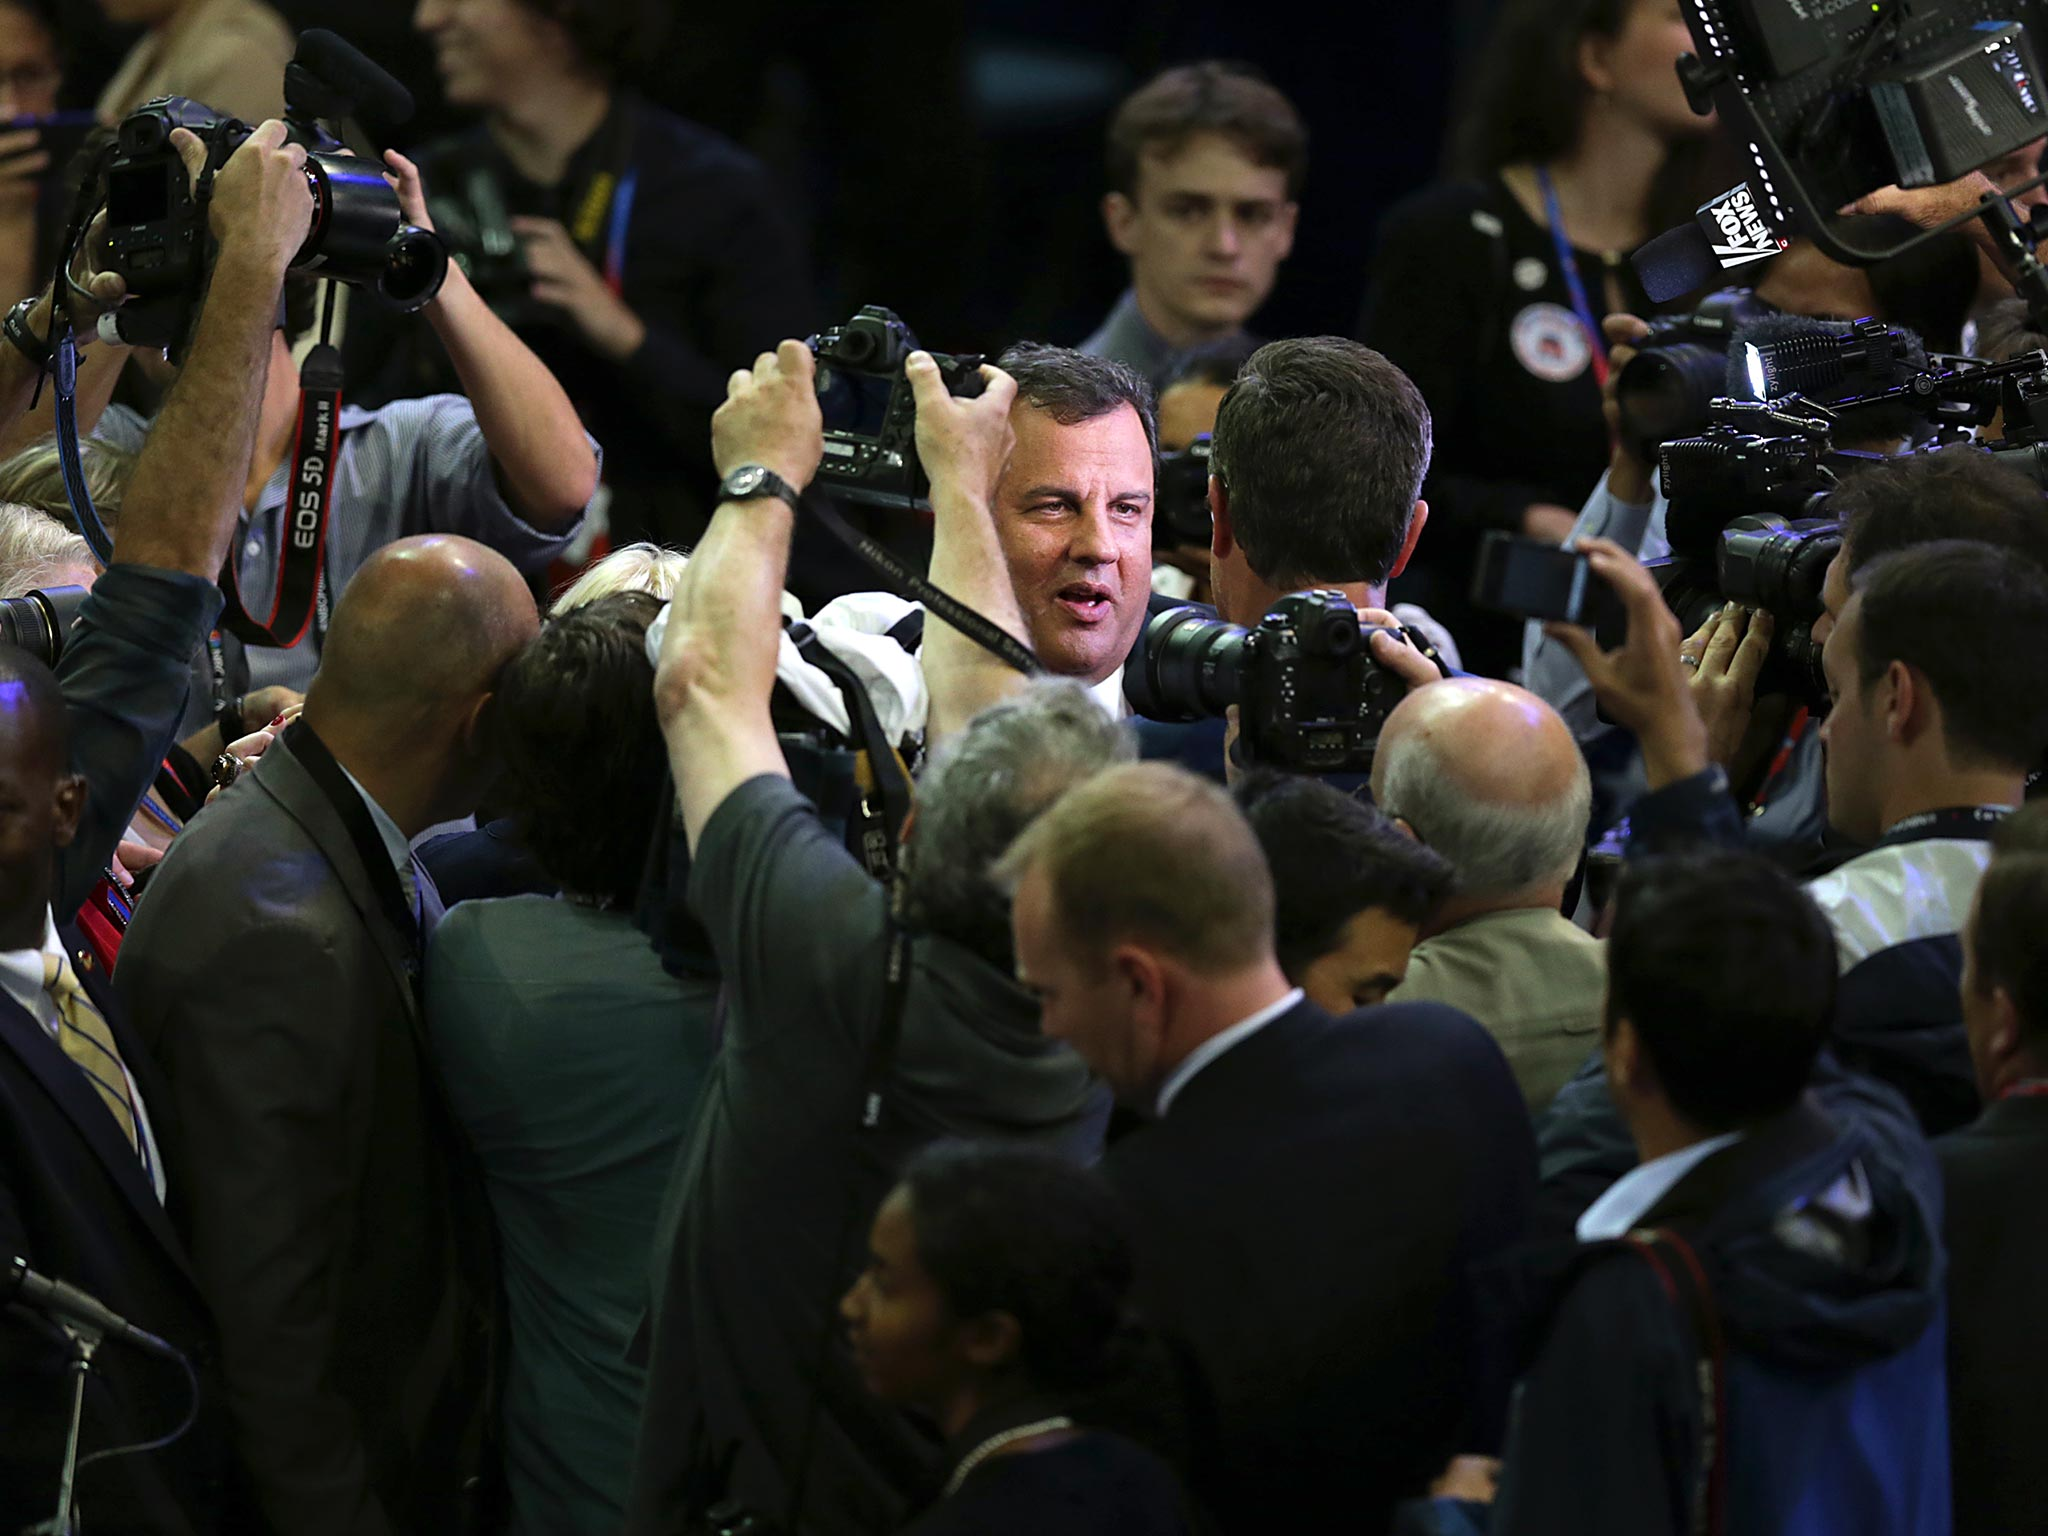 Chris Christie, governor of New Jersey, center, is swarmed by the media at the Republican National Convention in Tampa in 2012.